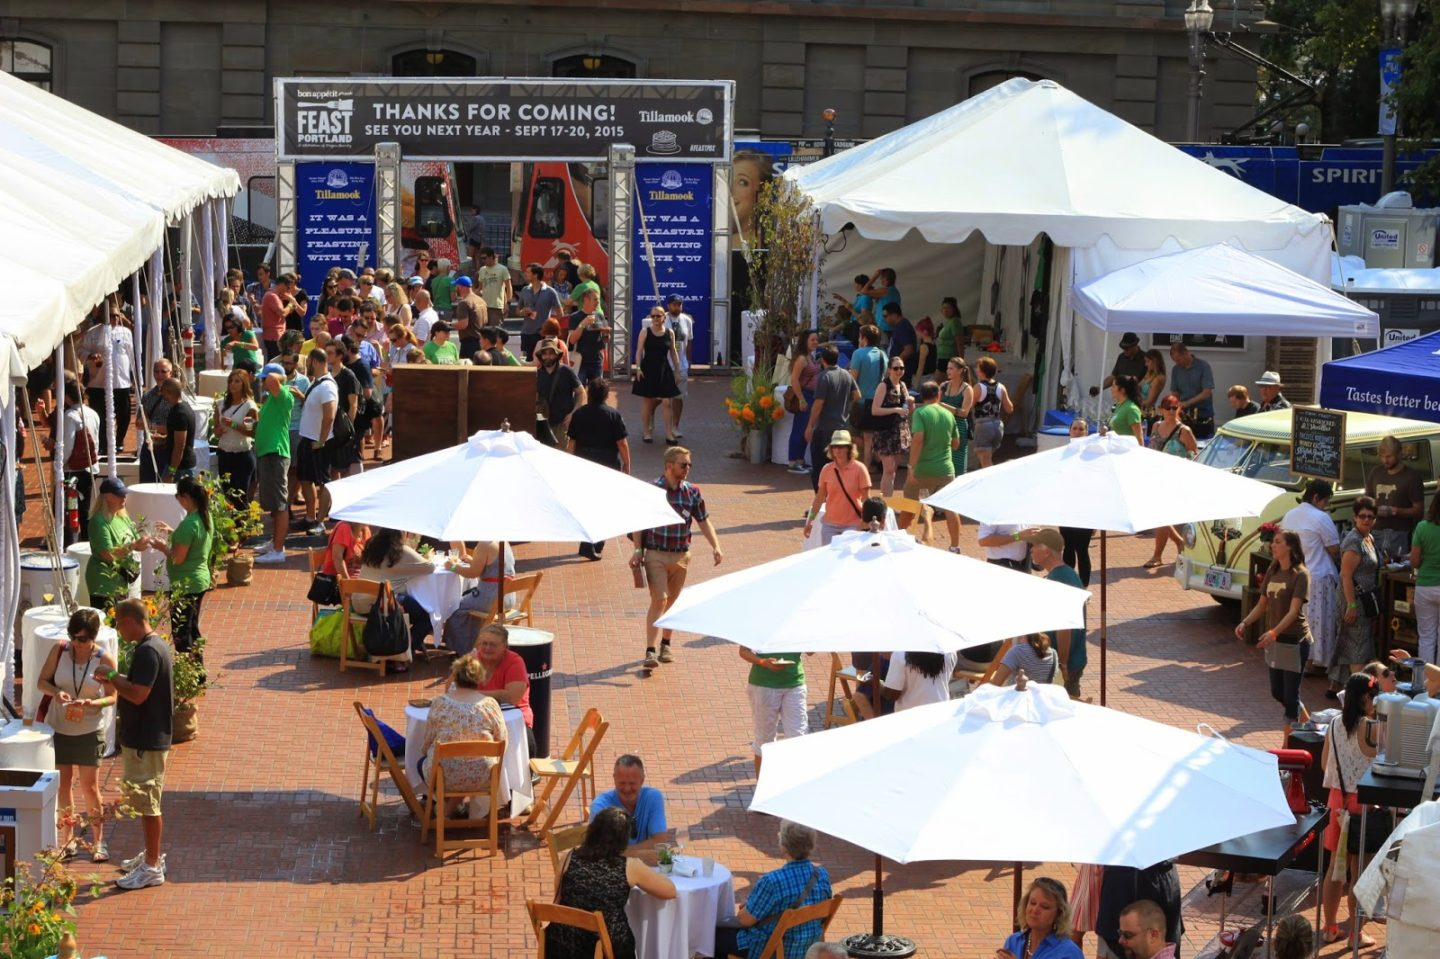 A look at a past Brunch Village event at Portland's Pioneer Courthouse Square. A 21-and-over event, walk around and taste amazing brunch-inspired food, spirits and sweets this upcoming Sunday! Image Courtesy: Jane Graybeal